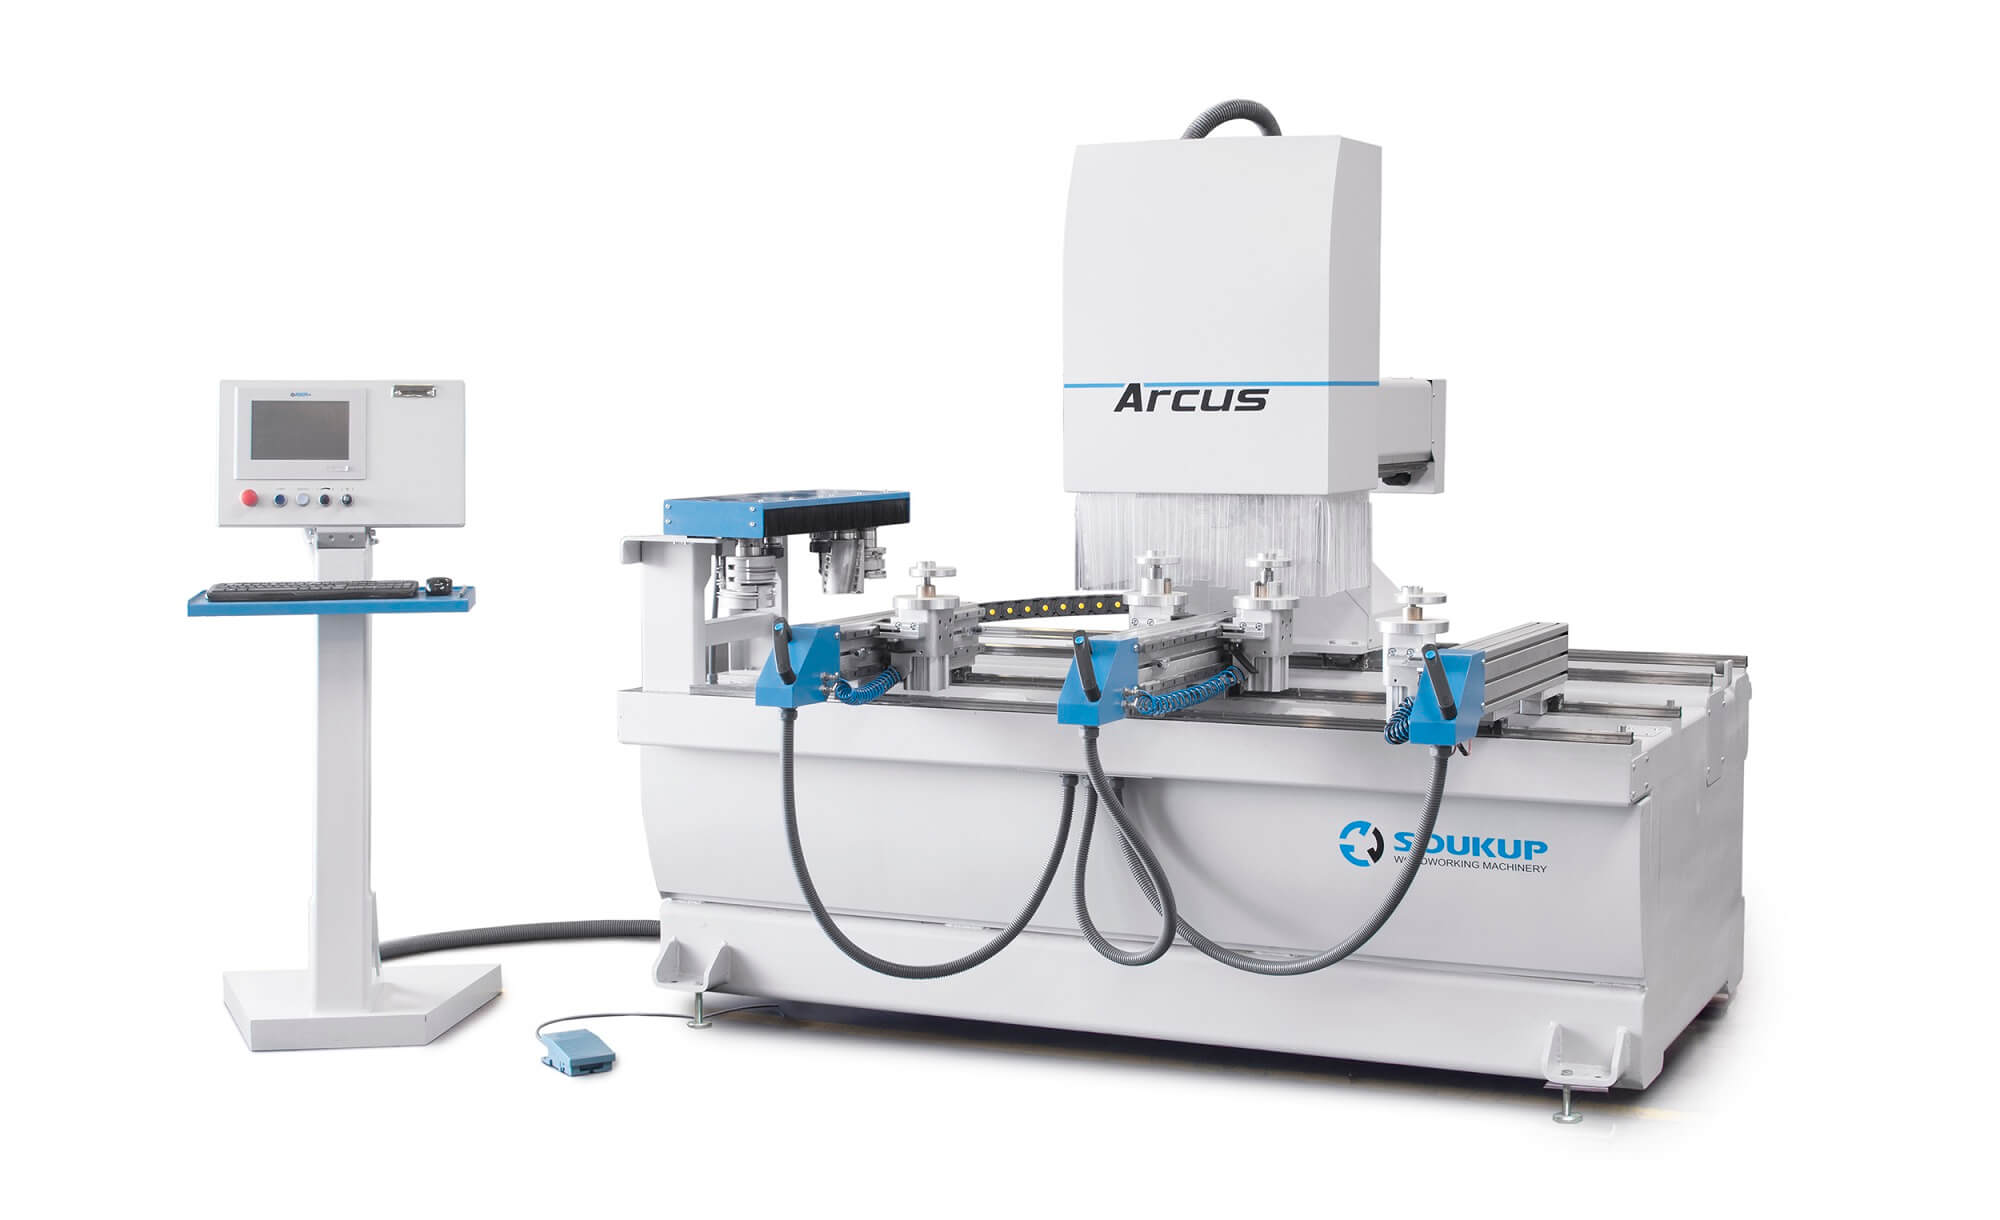 Soukup America ARCUS Arched Window and Door Jointing Machine